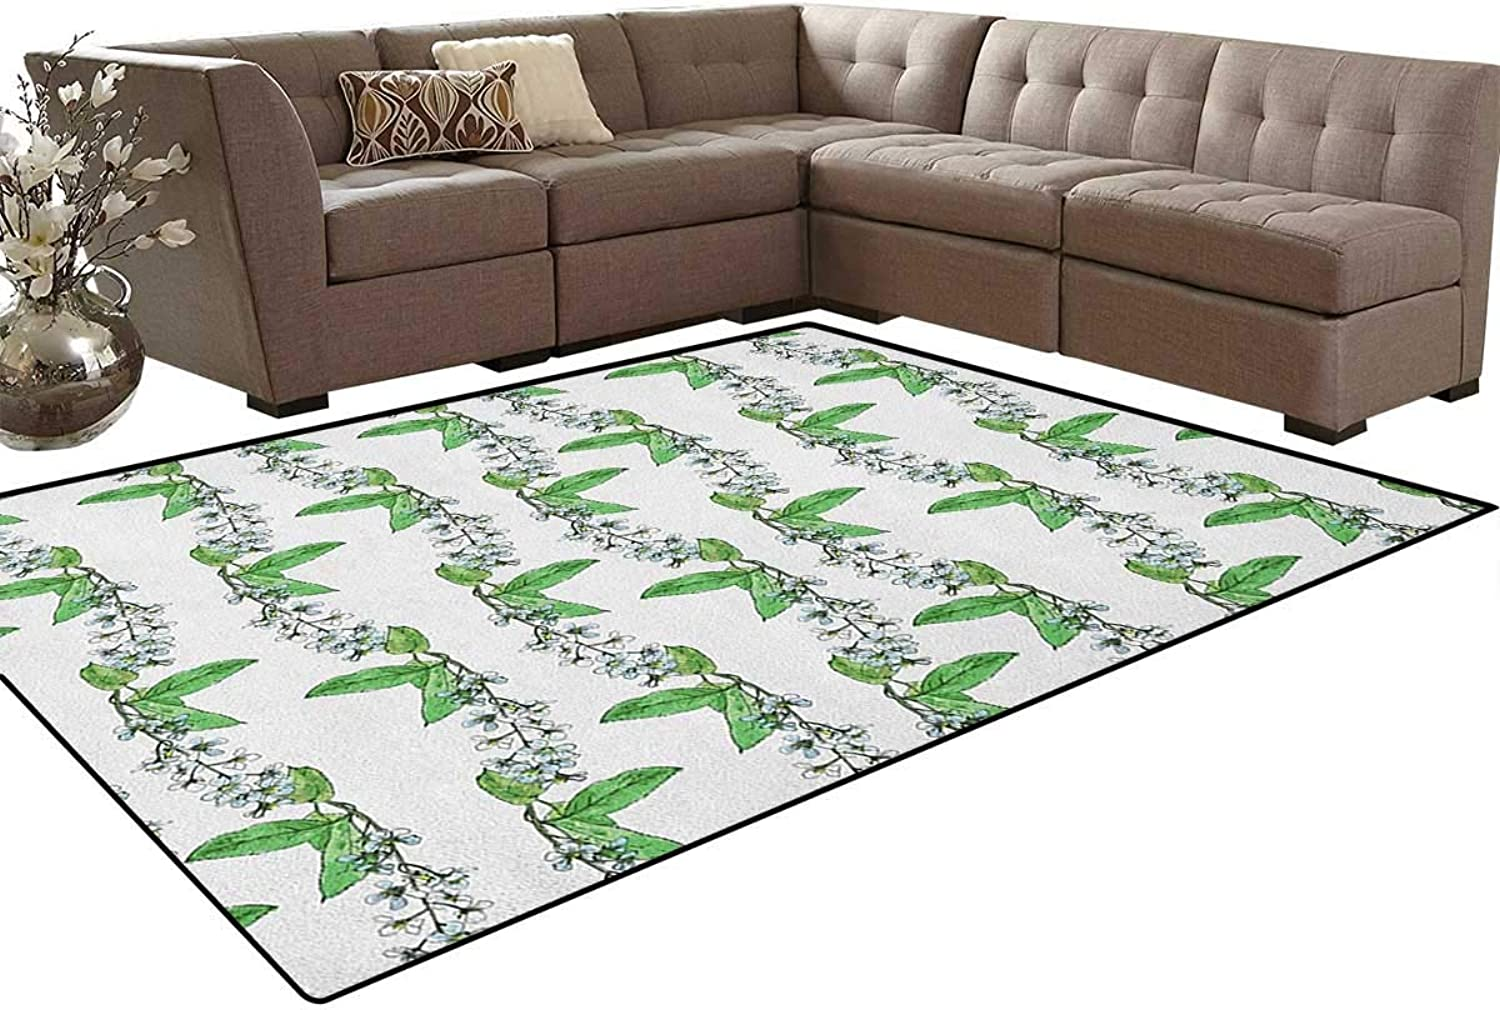 Blossoms of Romantic Spring Flowers of Bird Cherry Tree with Green Swirling Herbs Floor Mat Rug Indoor Front Door Kitchen and Living Room Bedroom Mats Rubber Non Slip